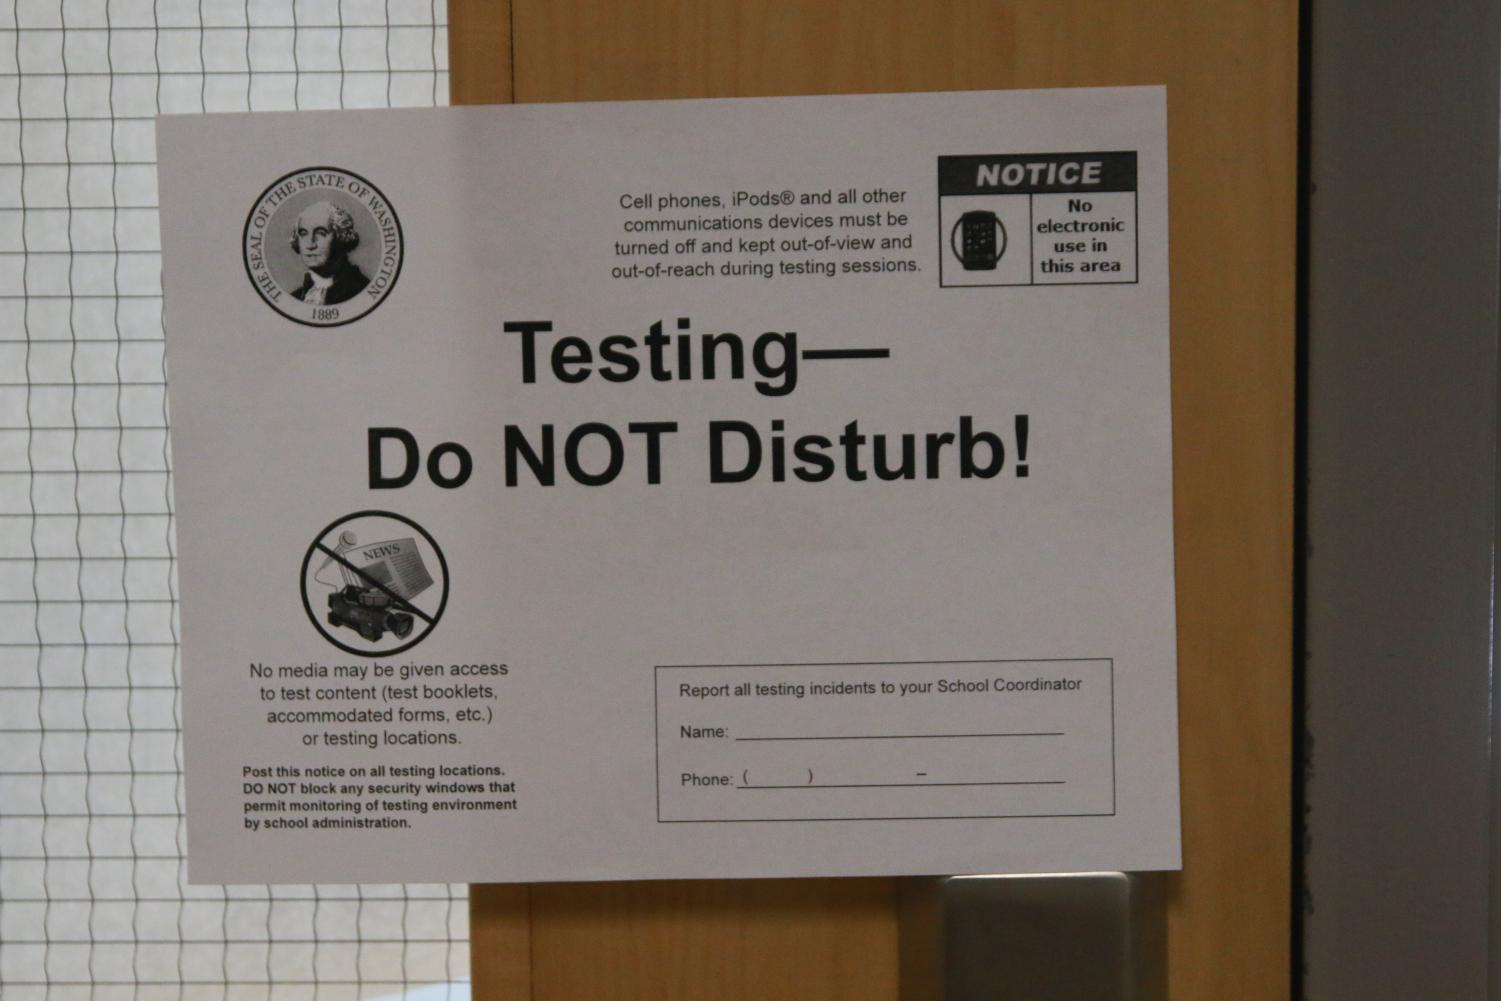 For the next two weeks, there will be these signs hanging on the doors of rooms that are involved in the testing.